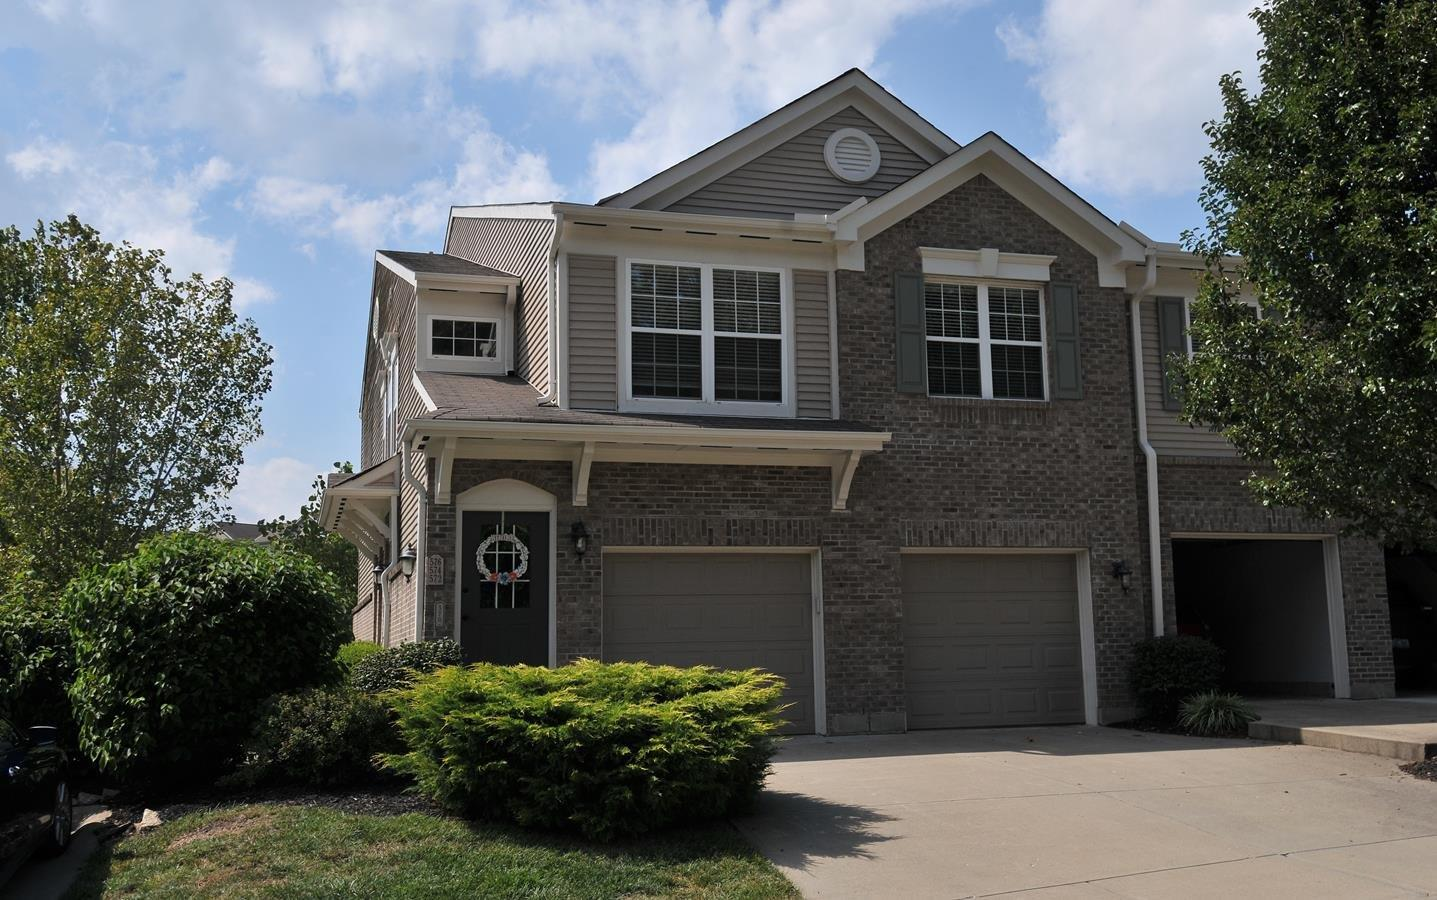 Photo 1 for 574 Rivers Breeze Dr Ludlow, KY 41016